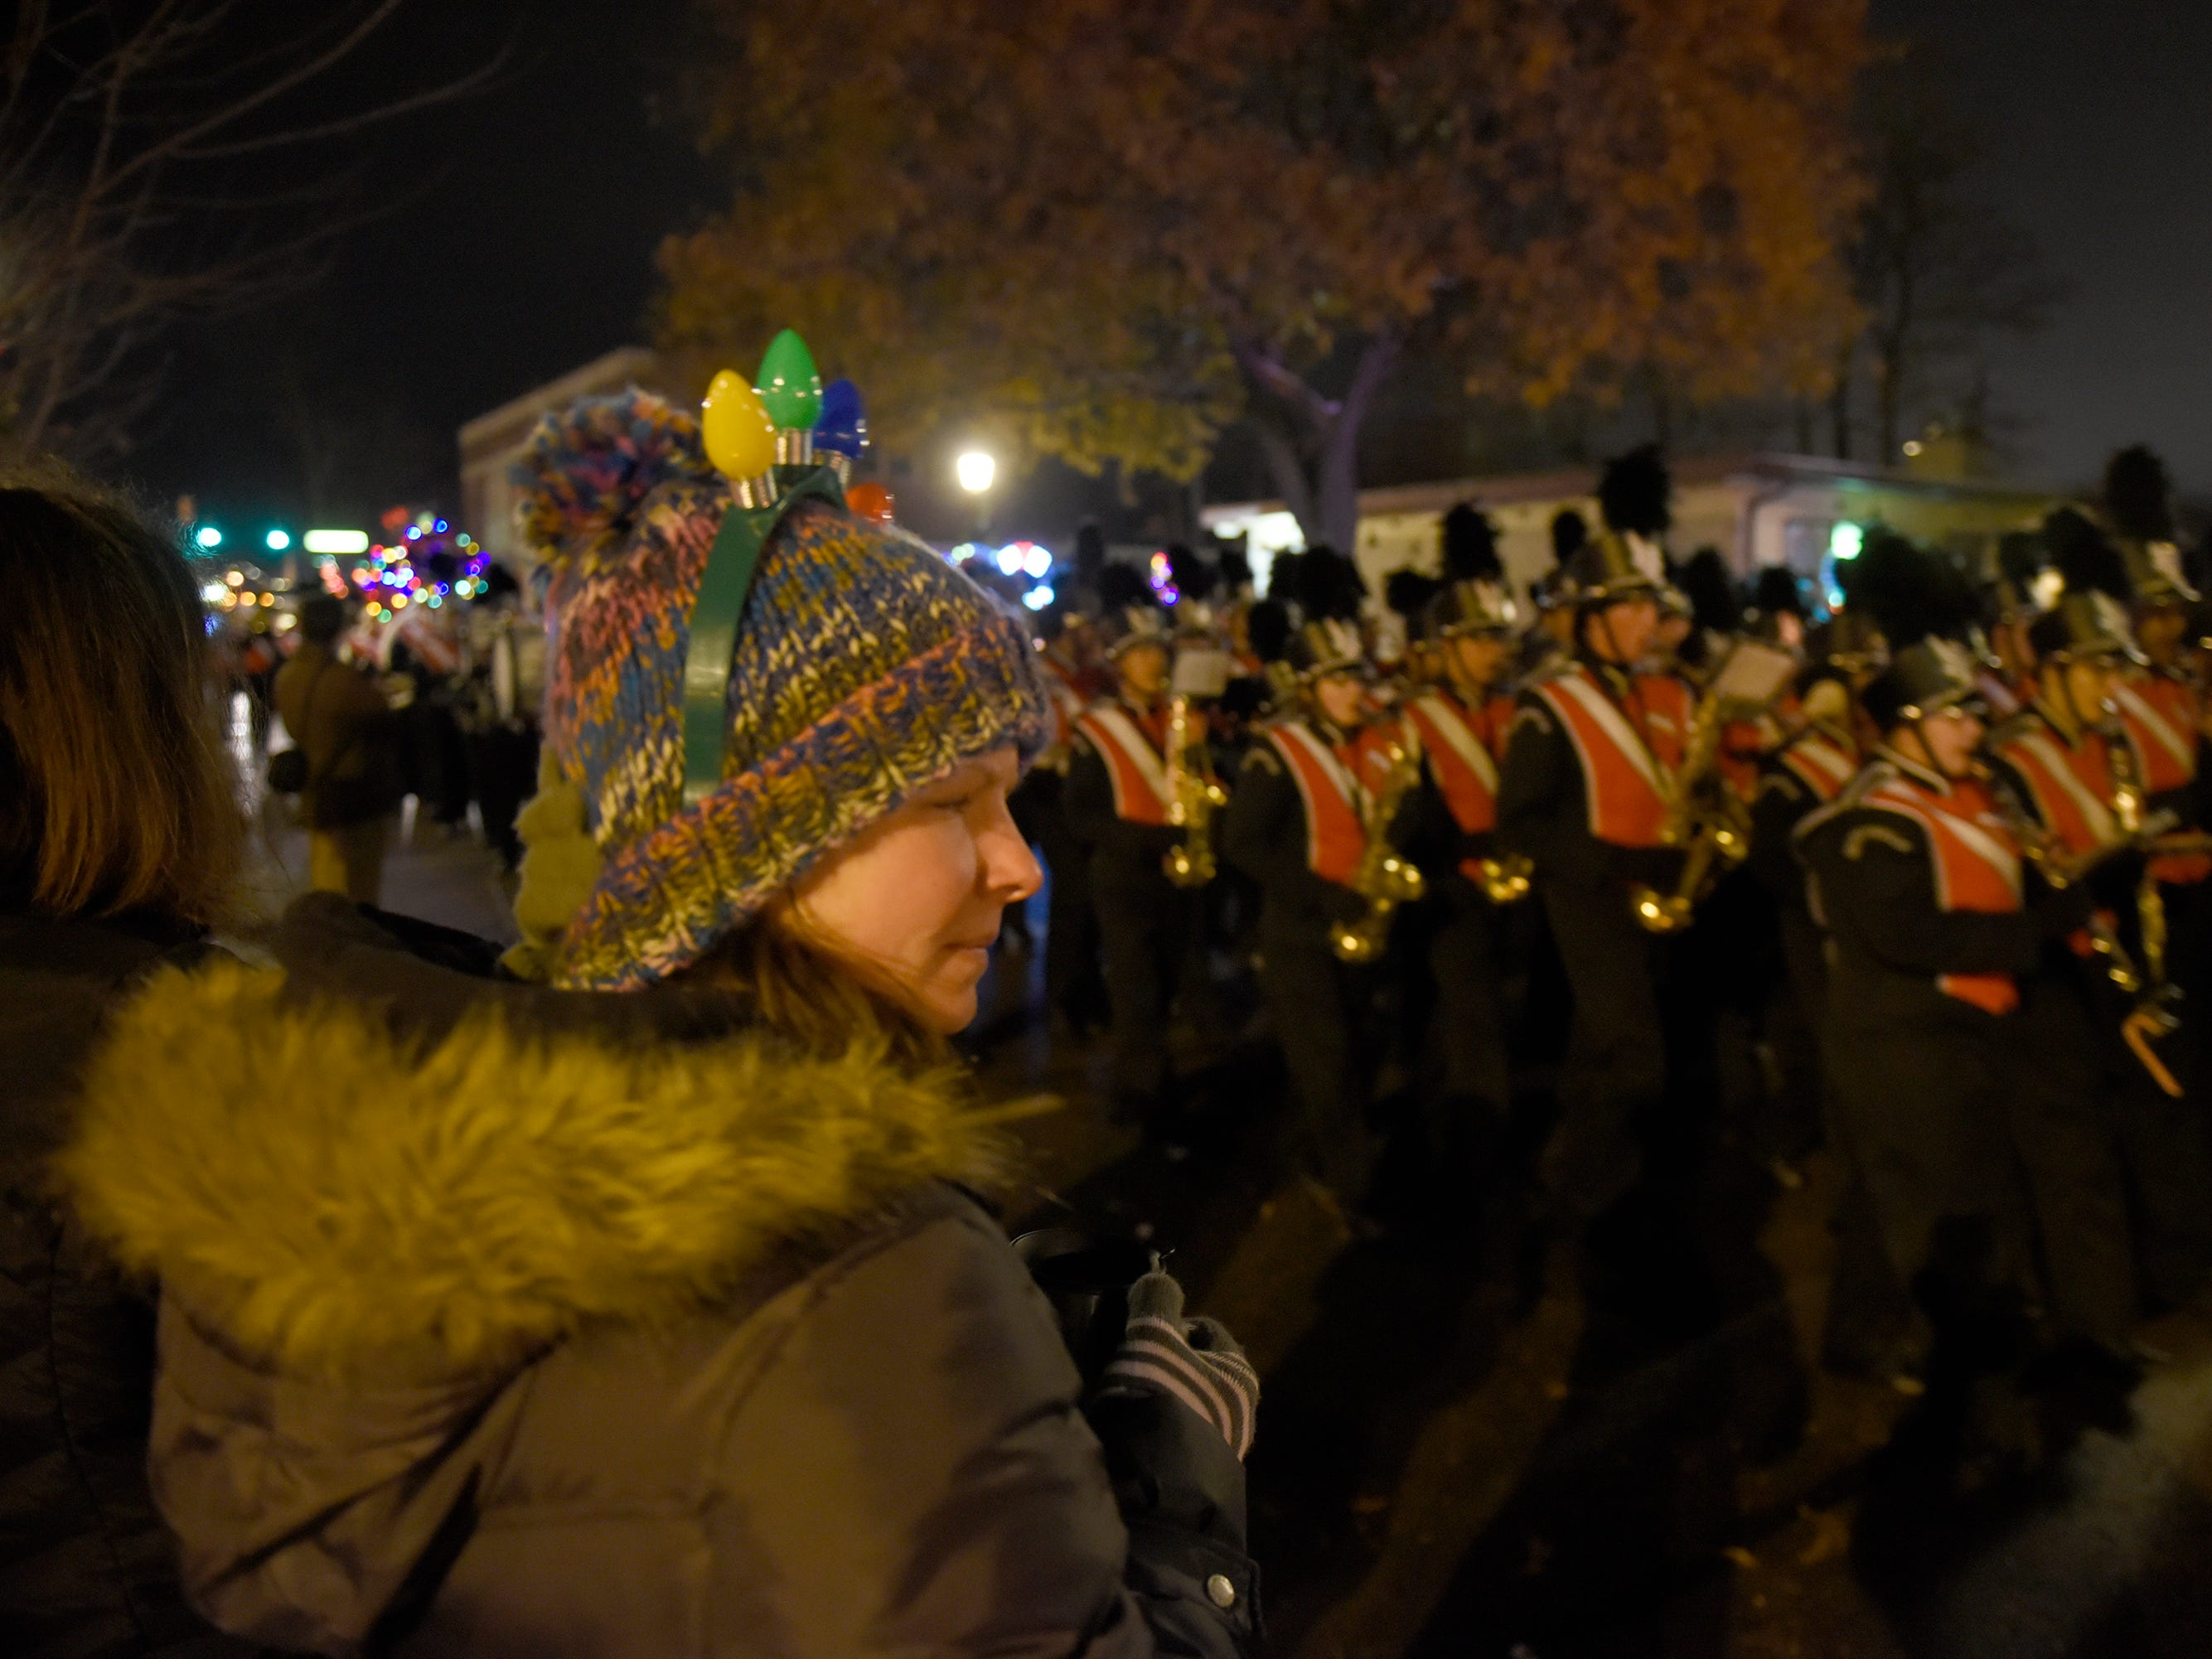 Rebecca Brodie watches the NHS Marching Band during the Holiday Lighted Parade in downtown Northville, Nov. 16, 2018.